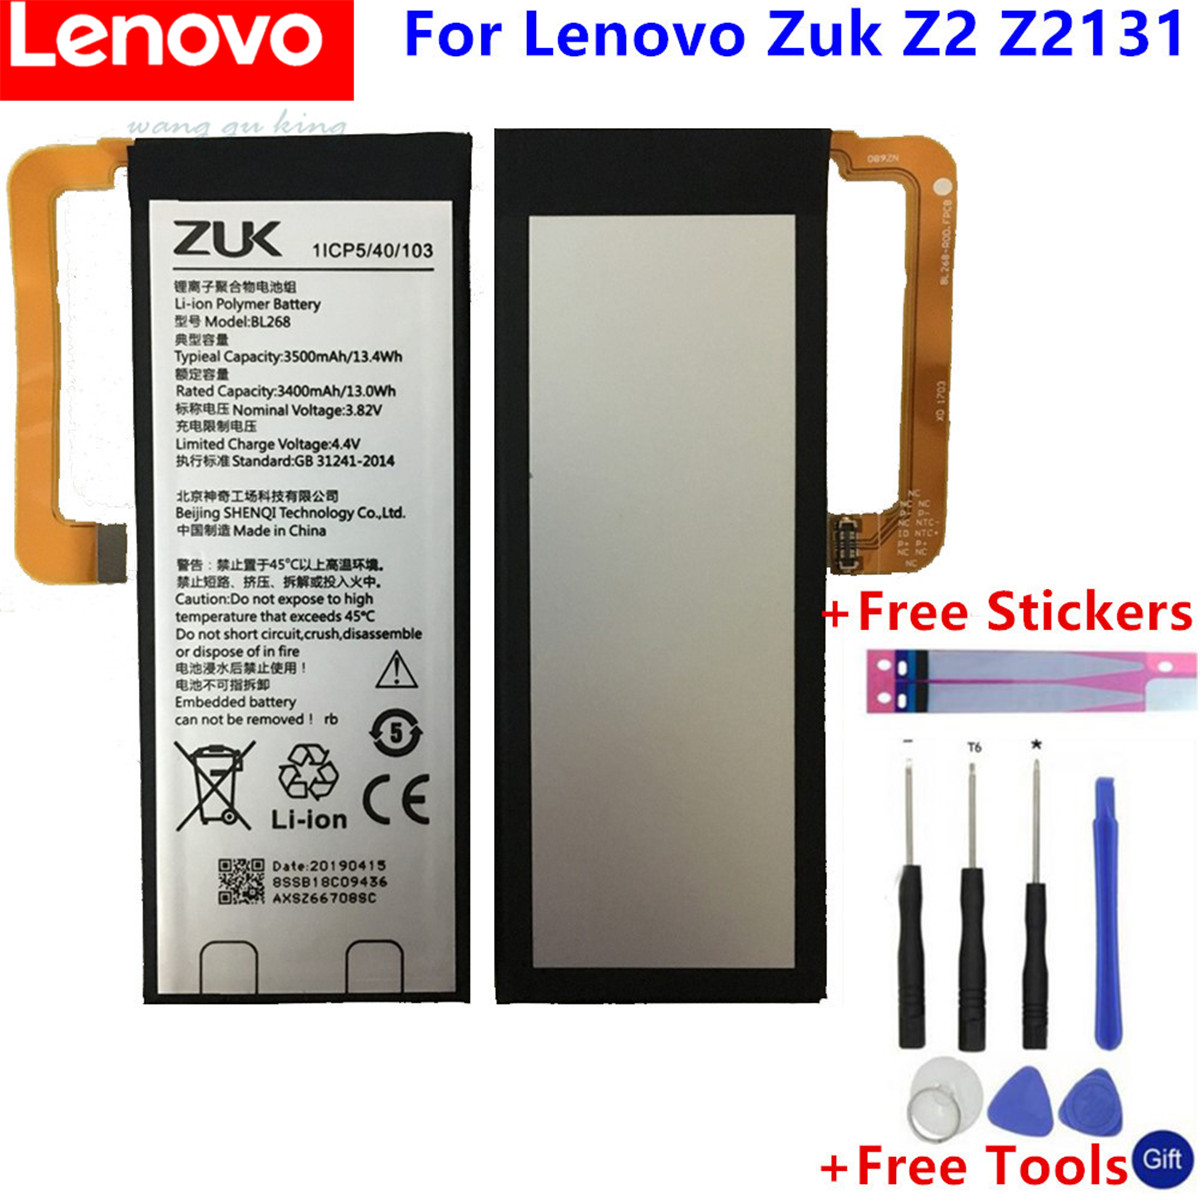 100% New Original Real 3500mAh BL268 Battery with glue sticker For Lenovo ZUK Z2 Z213 image